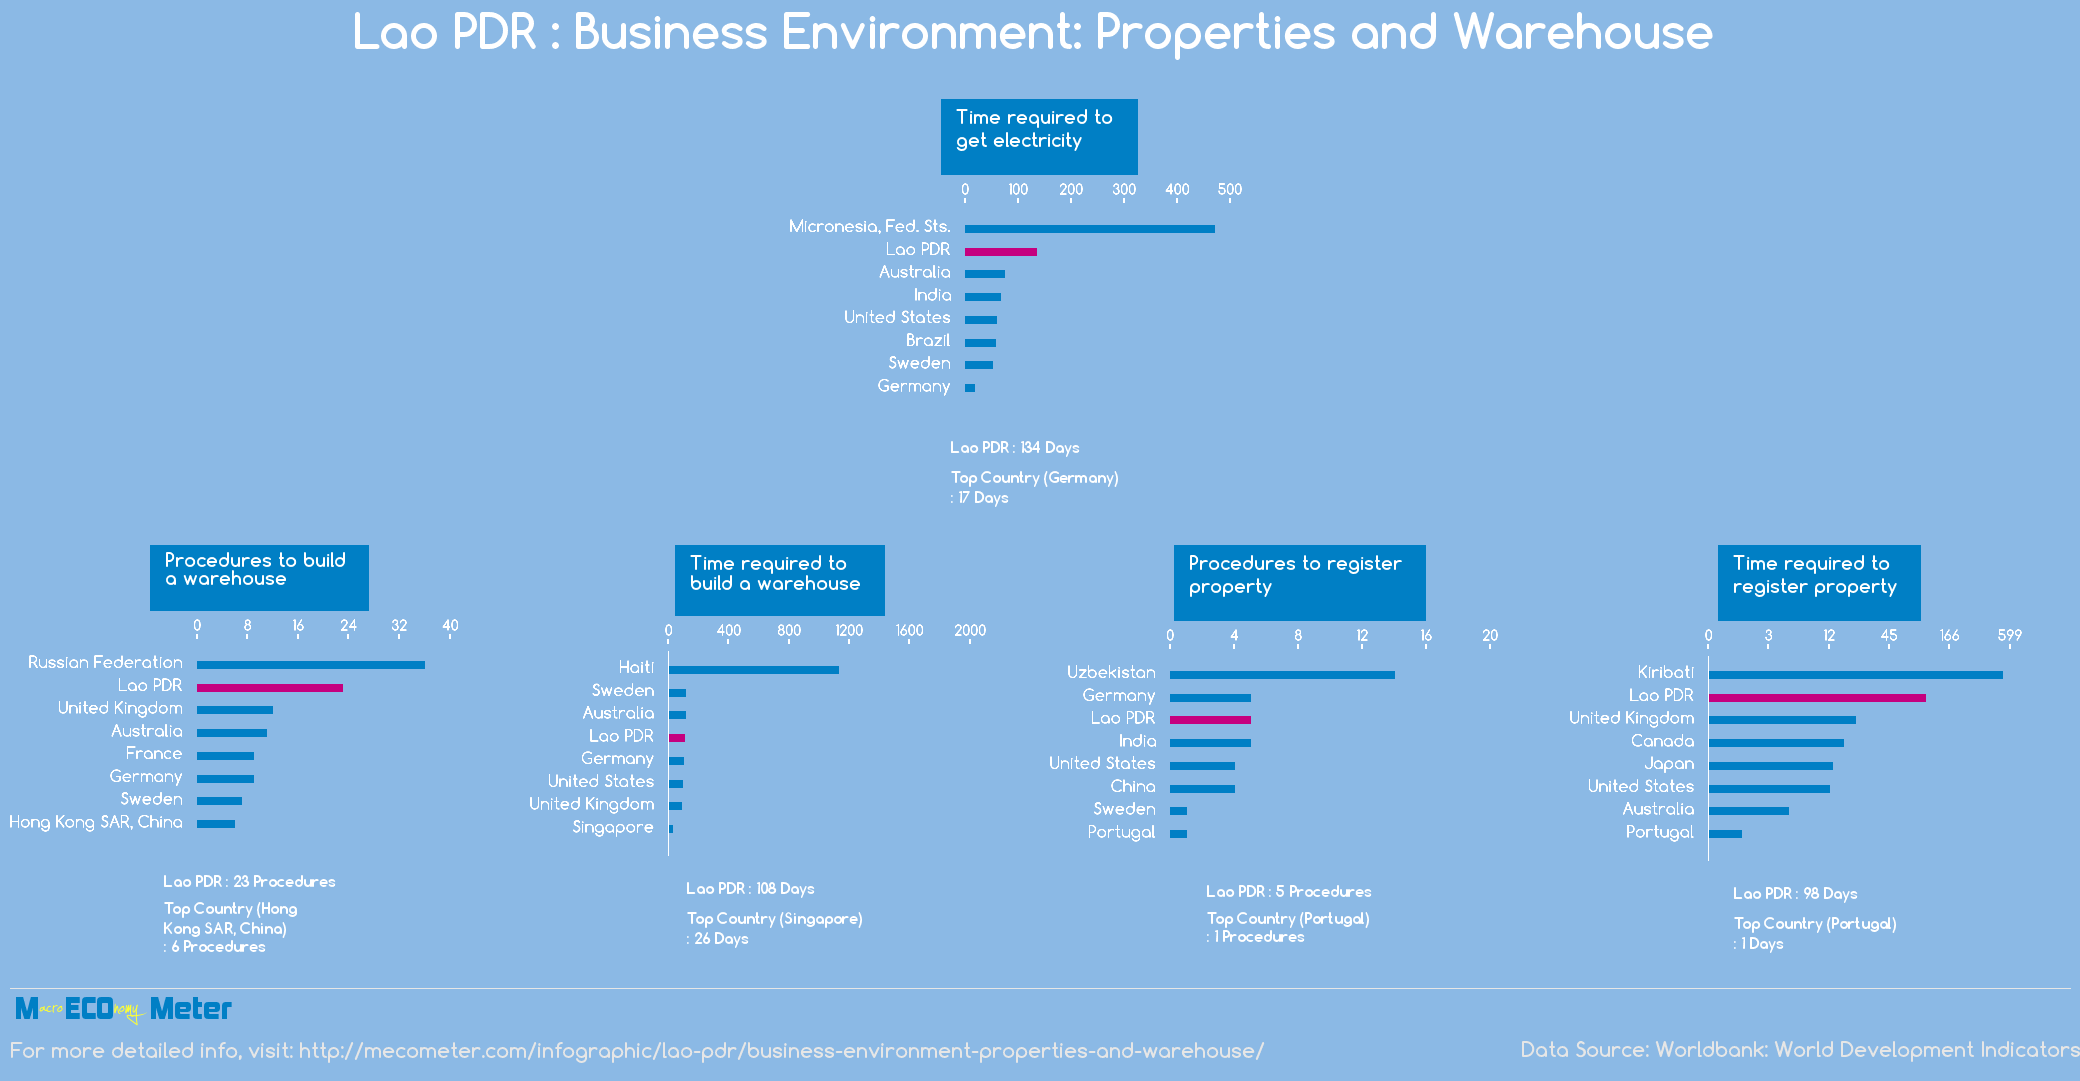 Lao PDR : Business Environment: Properties and Warehouse